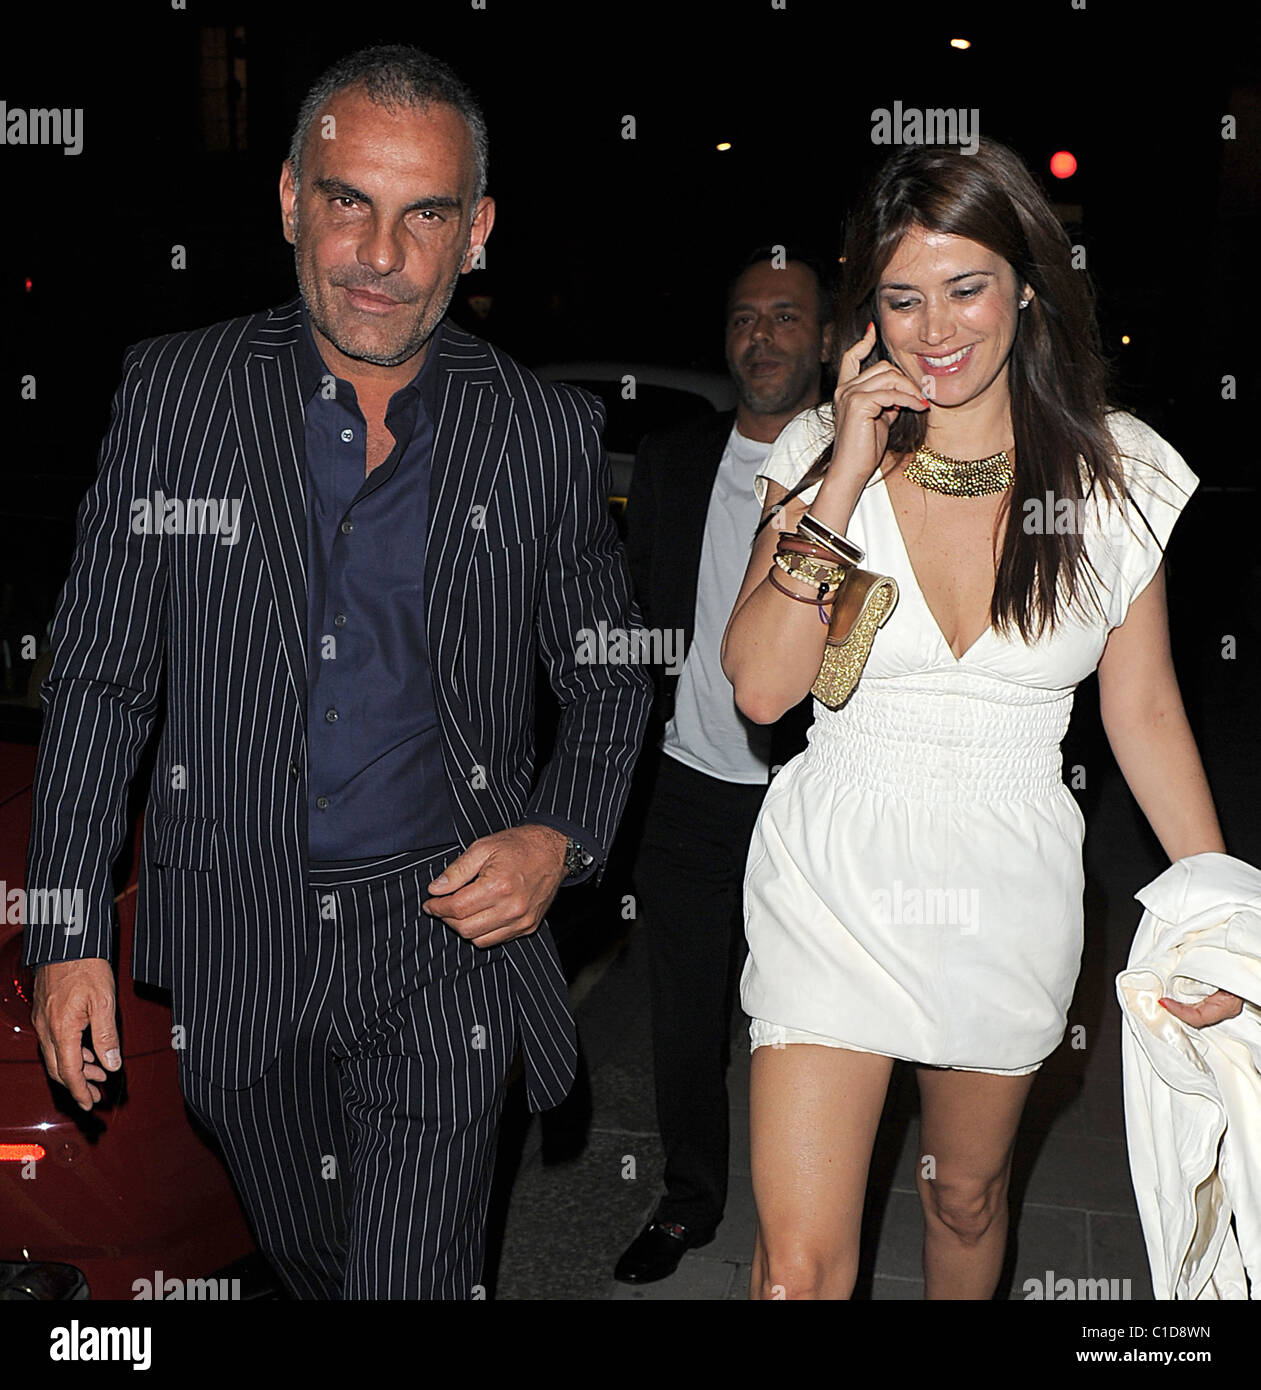 Fashion Designer Christian Audigier Who Is Most Famous For Launching Stock Photo Alamy